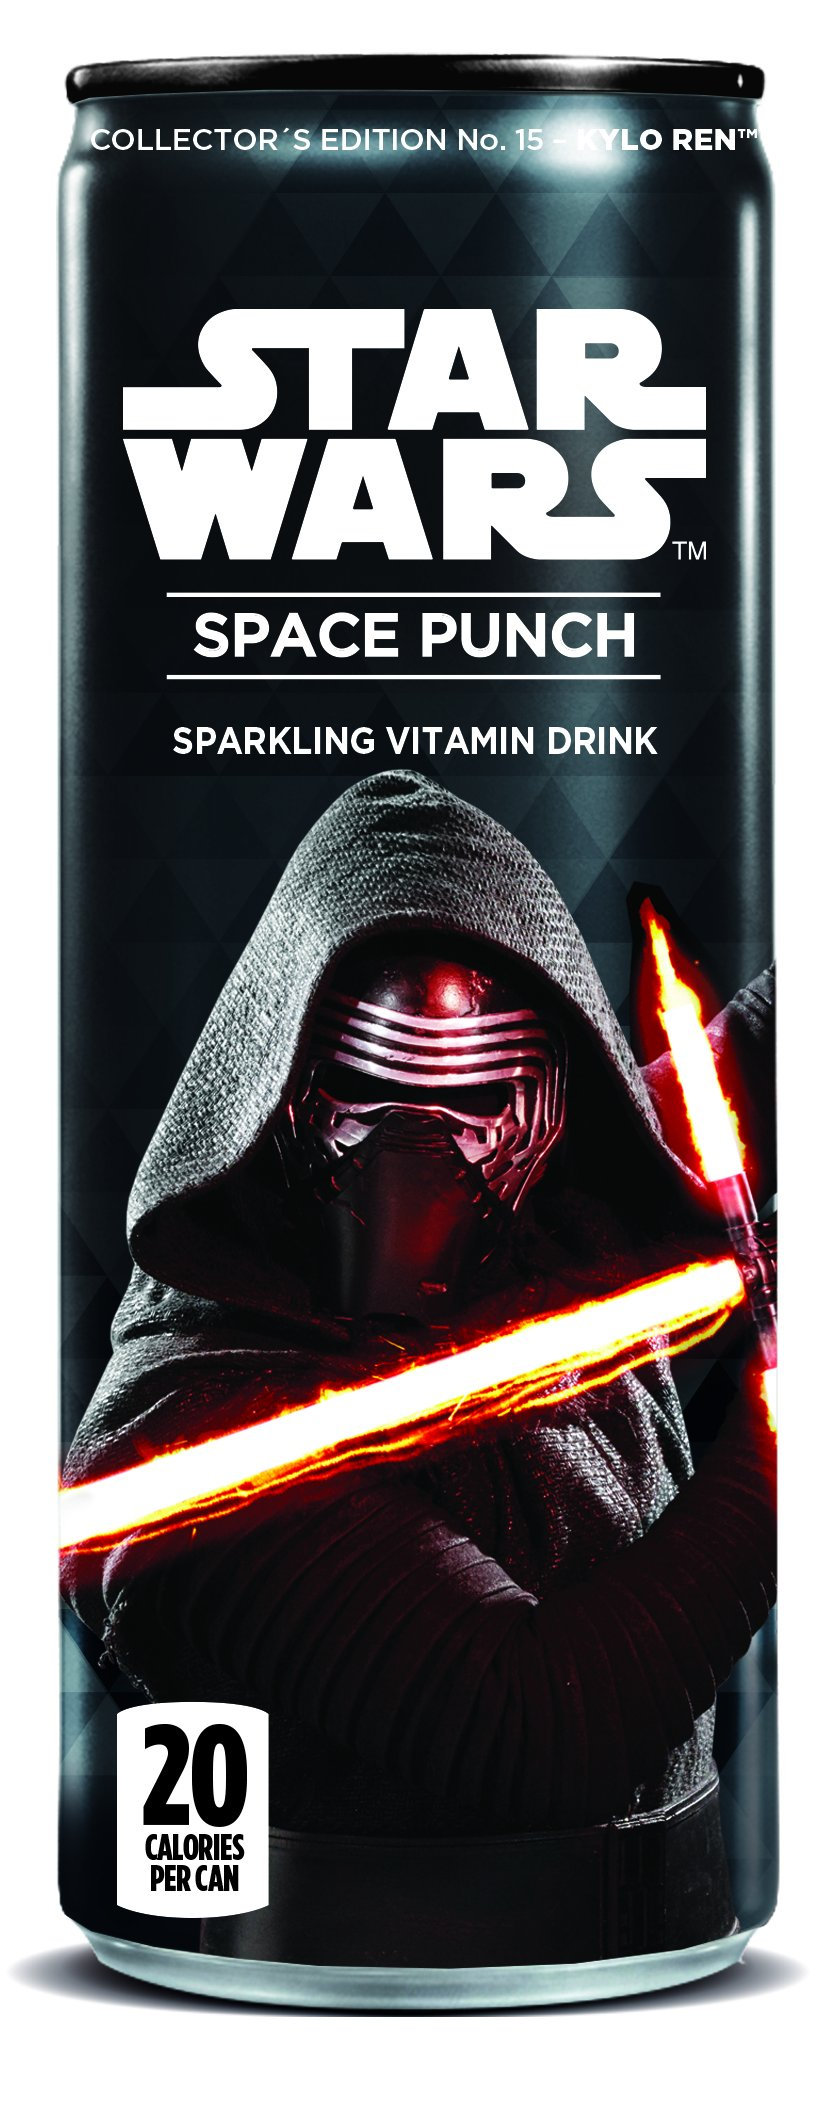 Star Wars Space Punch Sparkling Vitamin Drink, Collectors Edition No.13 - Kylo Ren Classic, 12 Oz. Cans (Pack of 12)